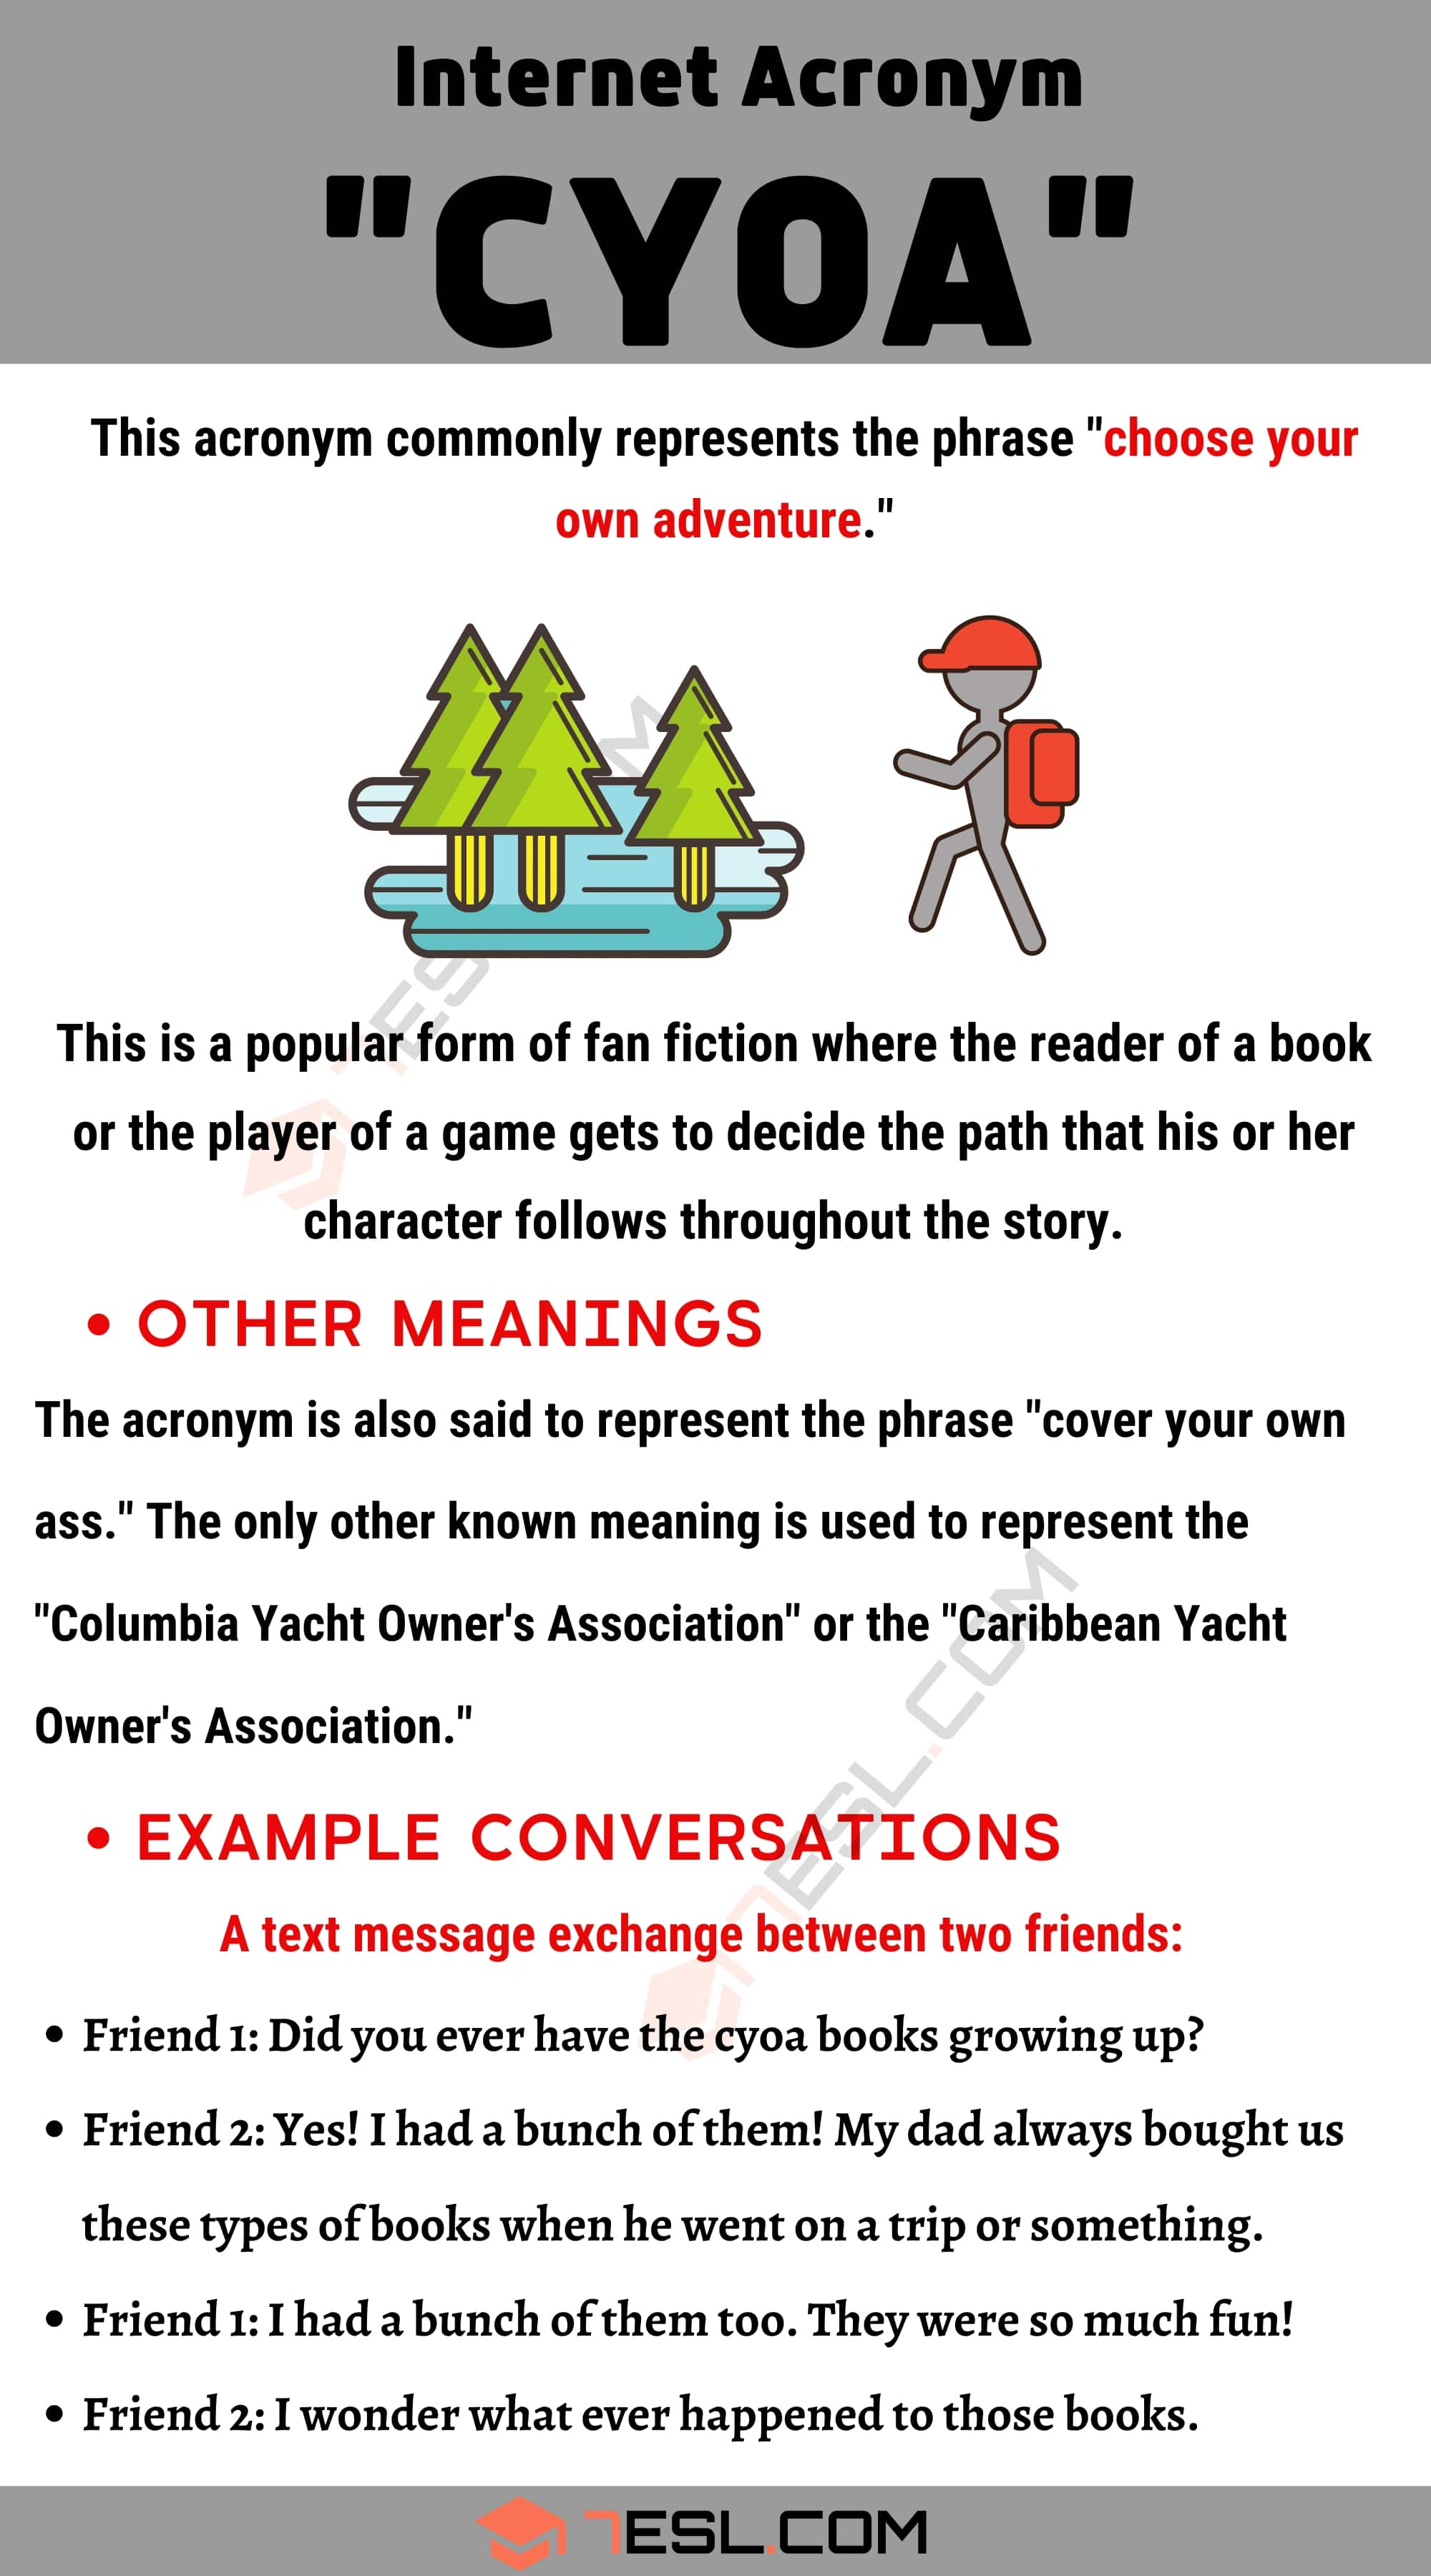 """CYOA Meaning: The Definition and Example Conversations of """"CYOA"""""""